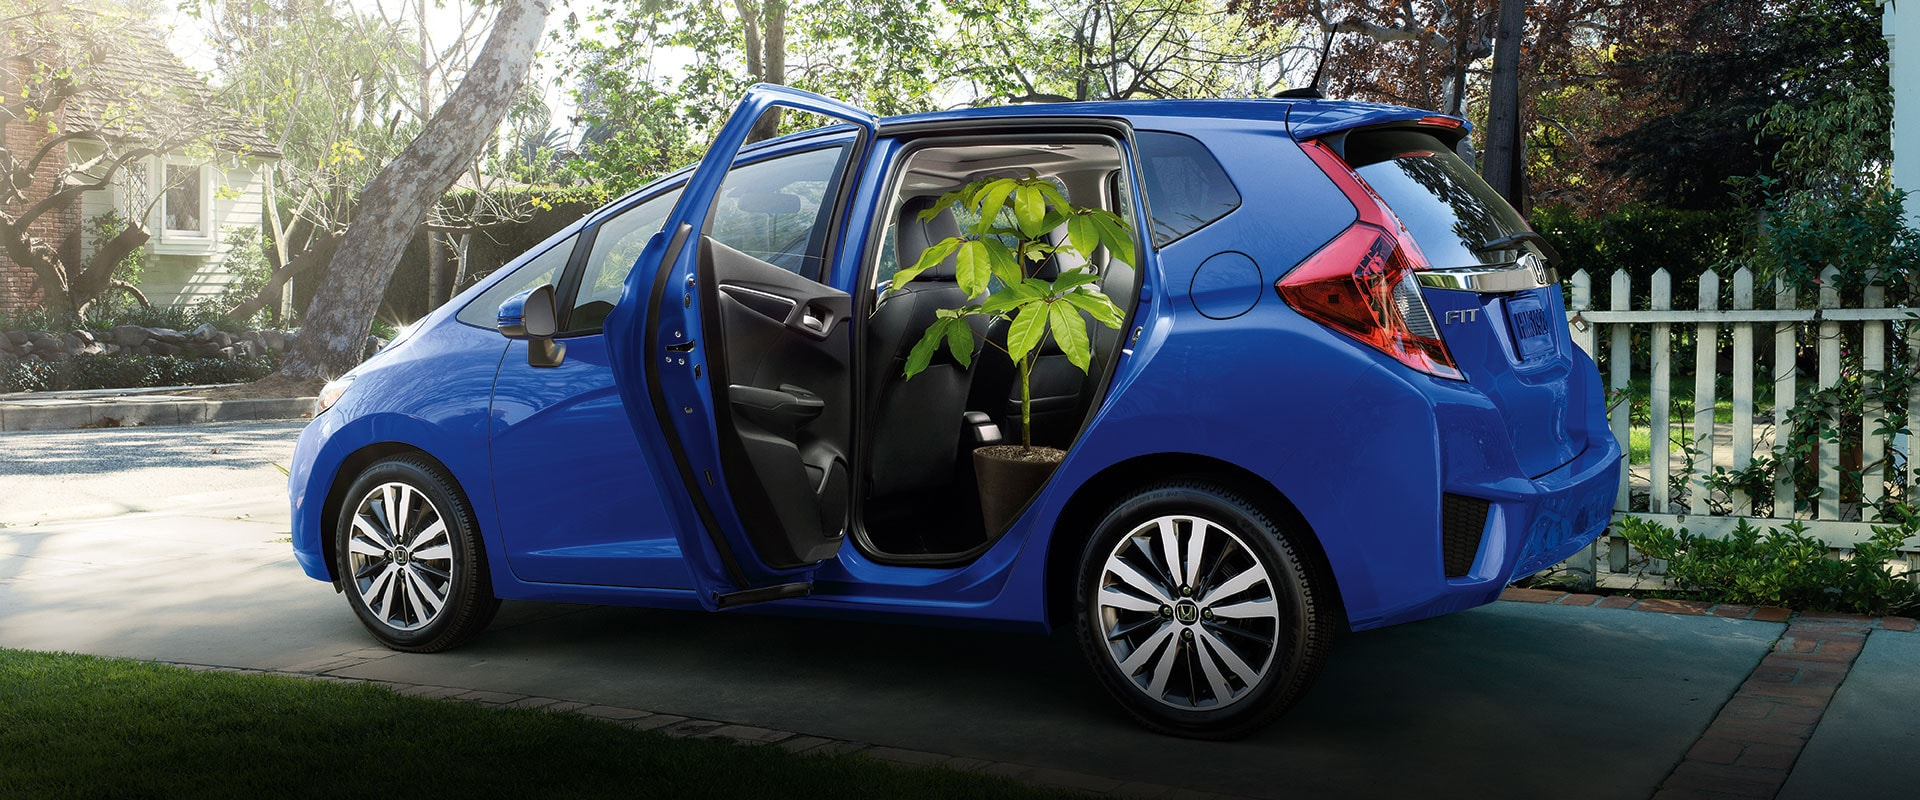 2016 honda fit features detail official site. Black Bedroom Furniture Sets. Home Design Ideas